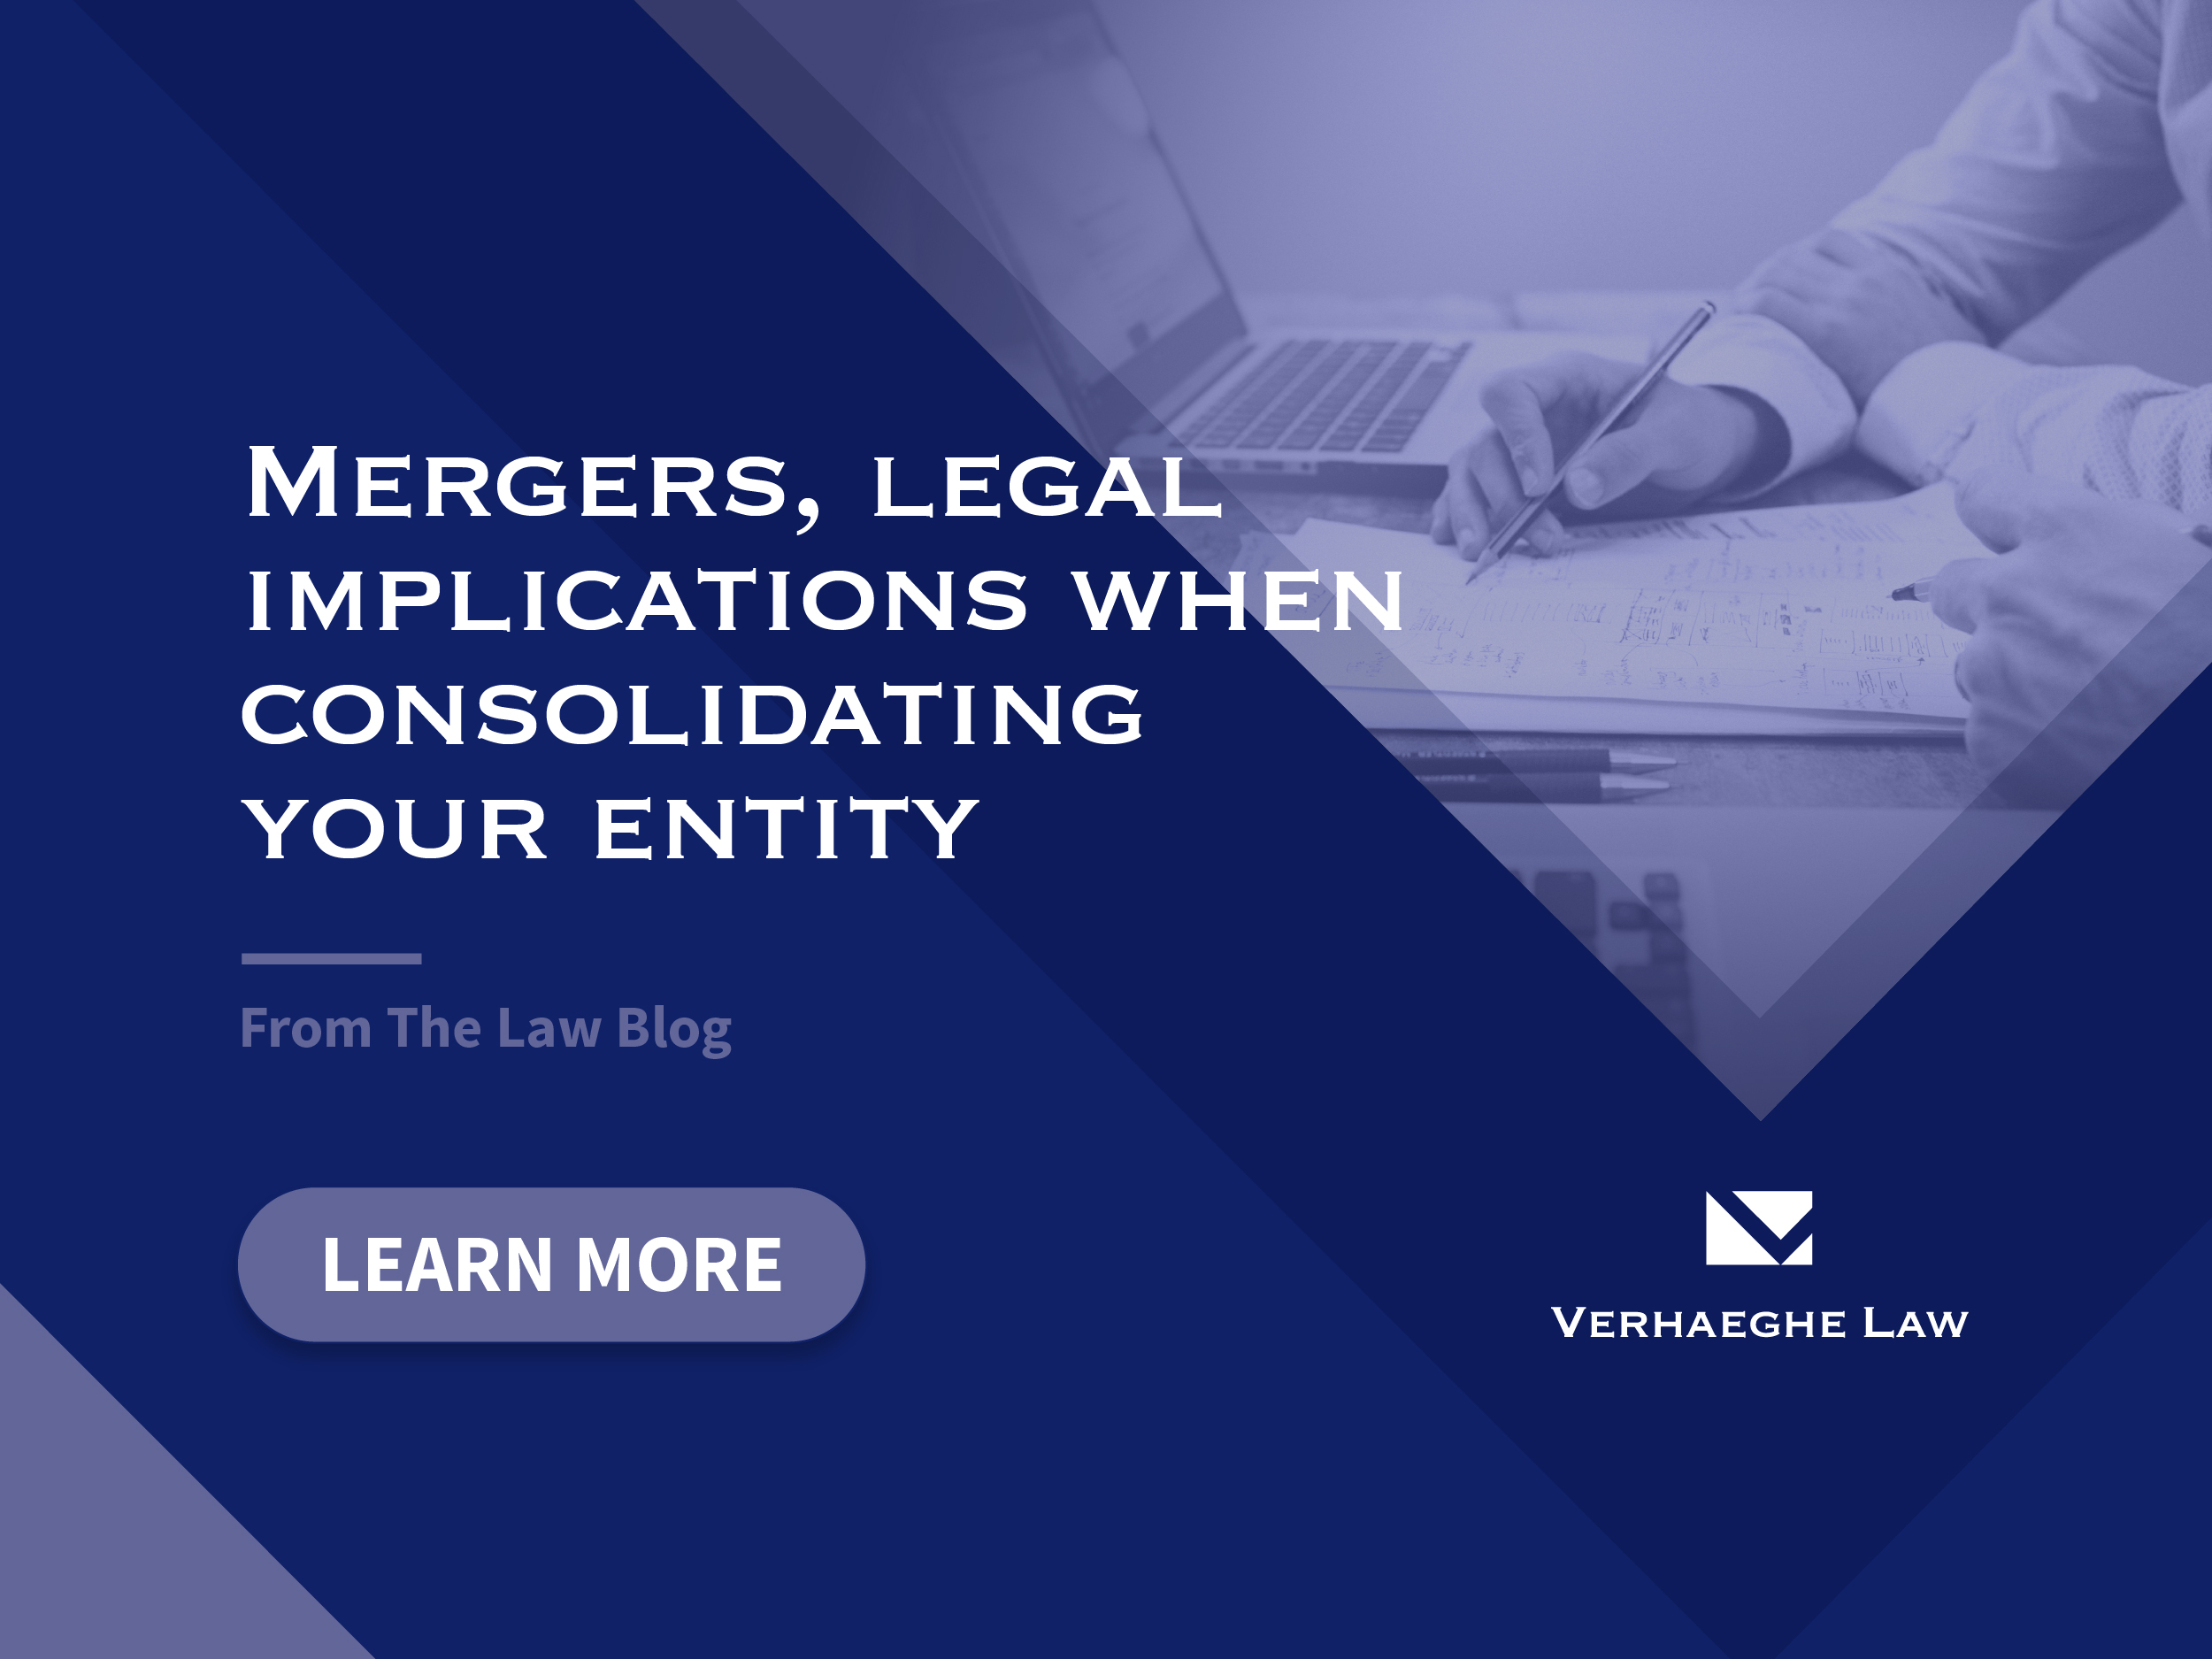 Mergers: legal implications when consolidating your entity